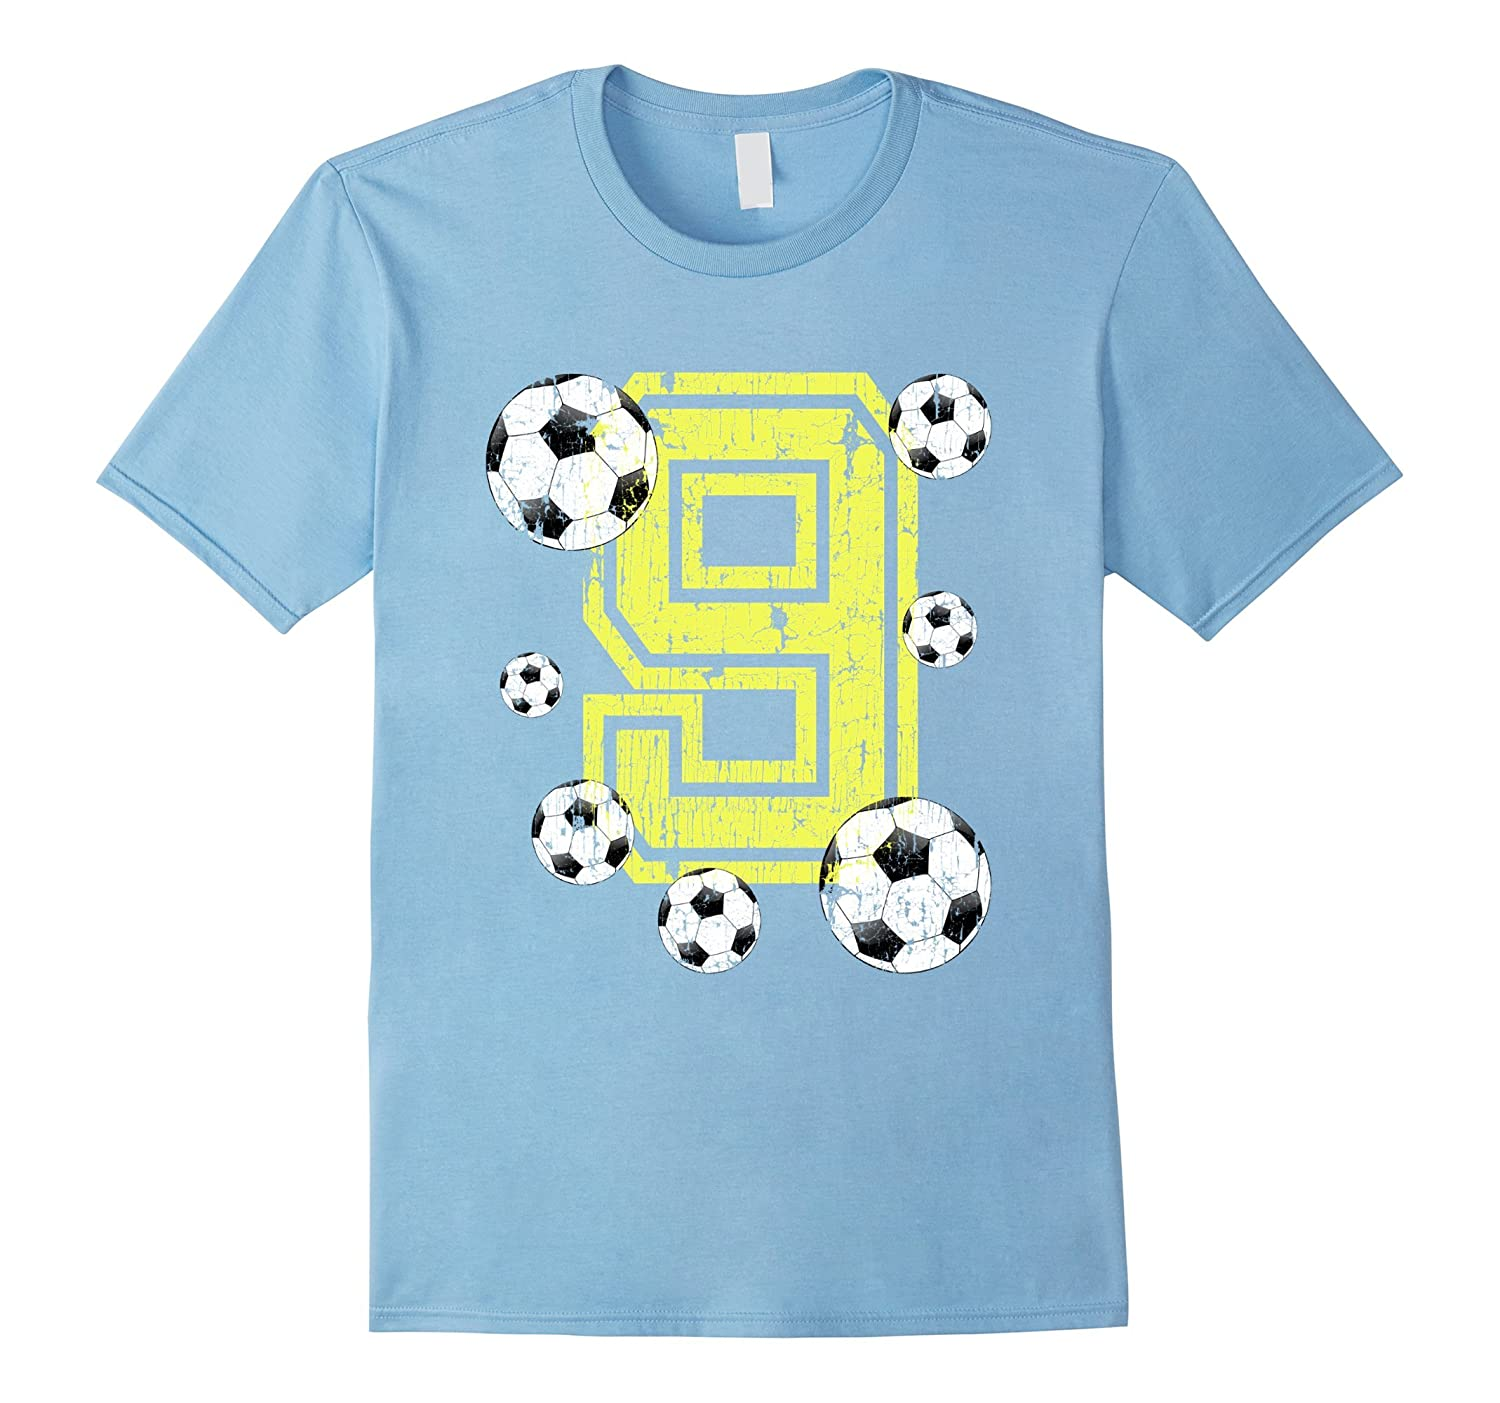 9e85128dce4 9th Birthday Soccer Fan T-Shirt Gift for Girls and Boys-PL – Polozatee